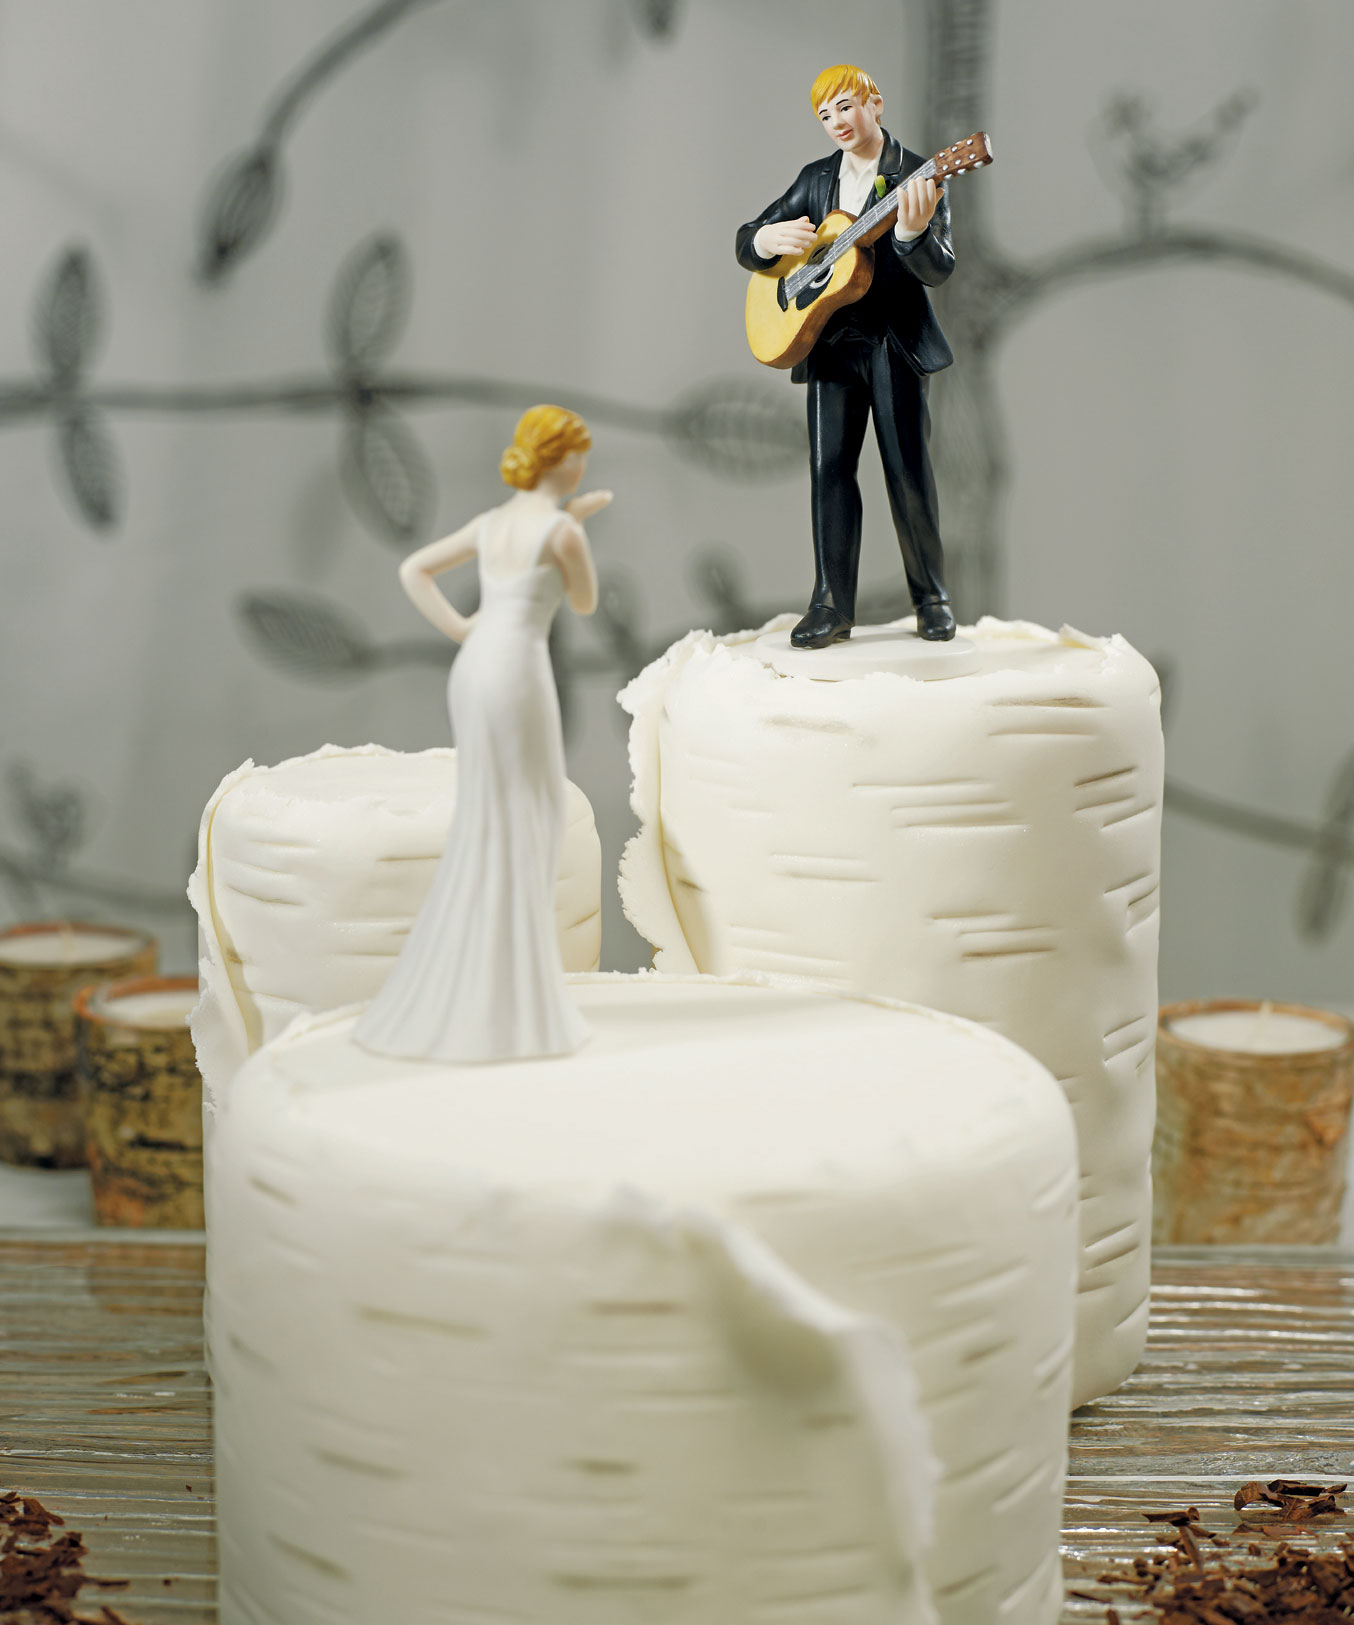 love serenade guitar playing groom wedding cake topper figurine ebay. Black Bedroom Furniture Sets. Home Design Ideas